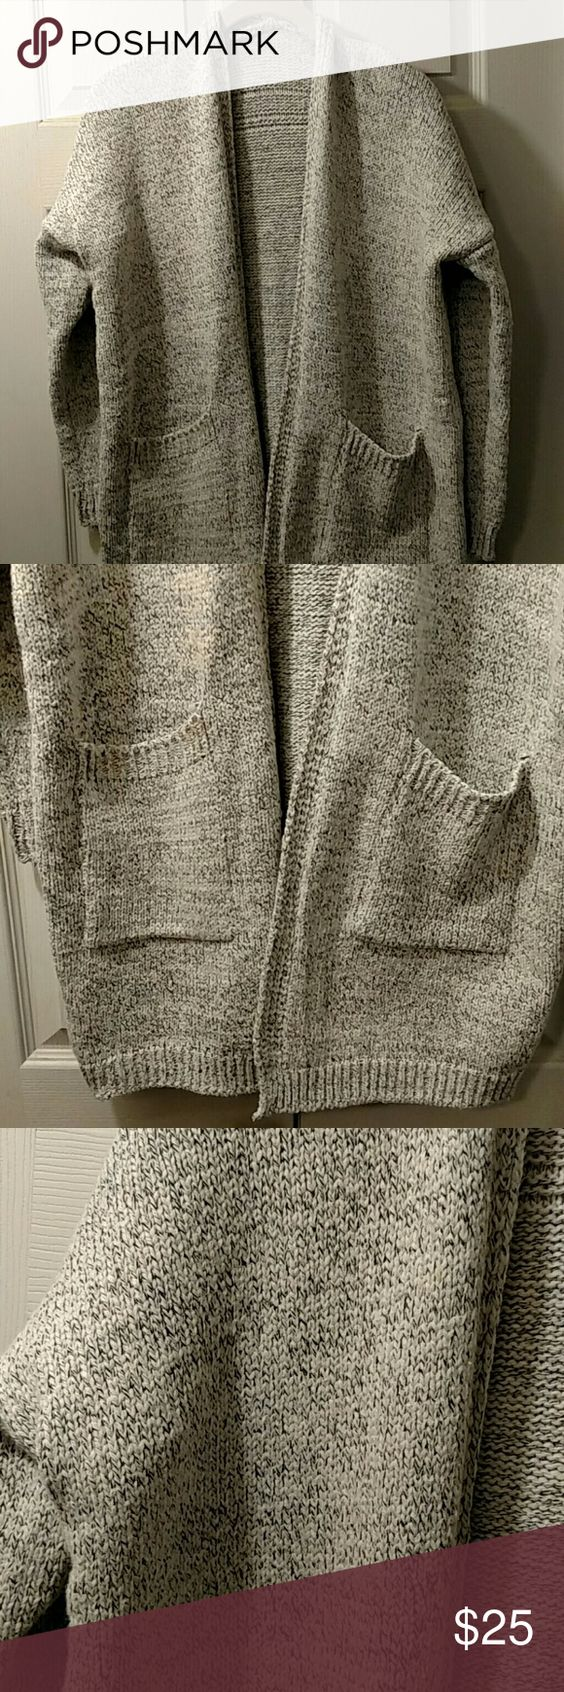 """Sweater      NWOT 30"""" L very soft and cozy no size on it best fit is S/M Sweaters Cardigans"""